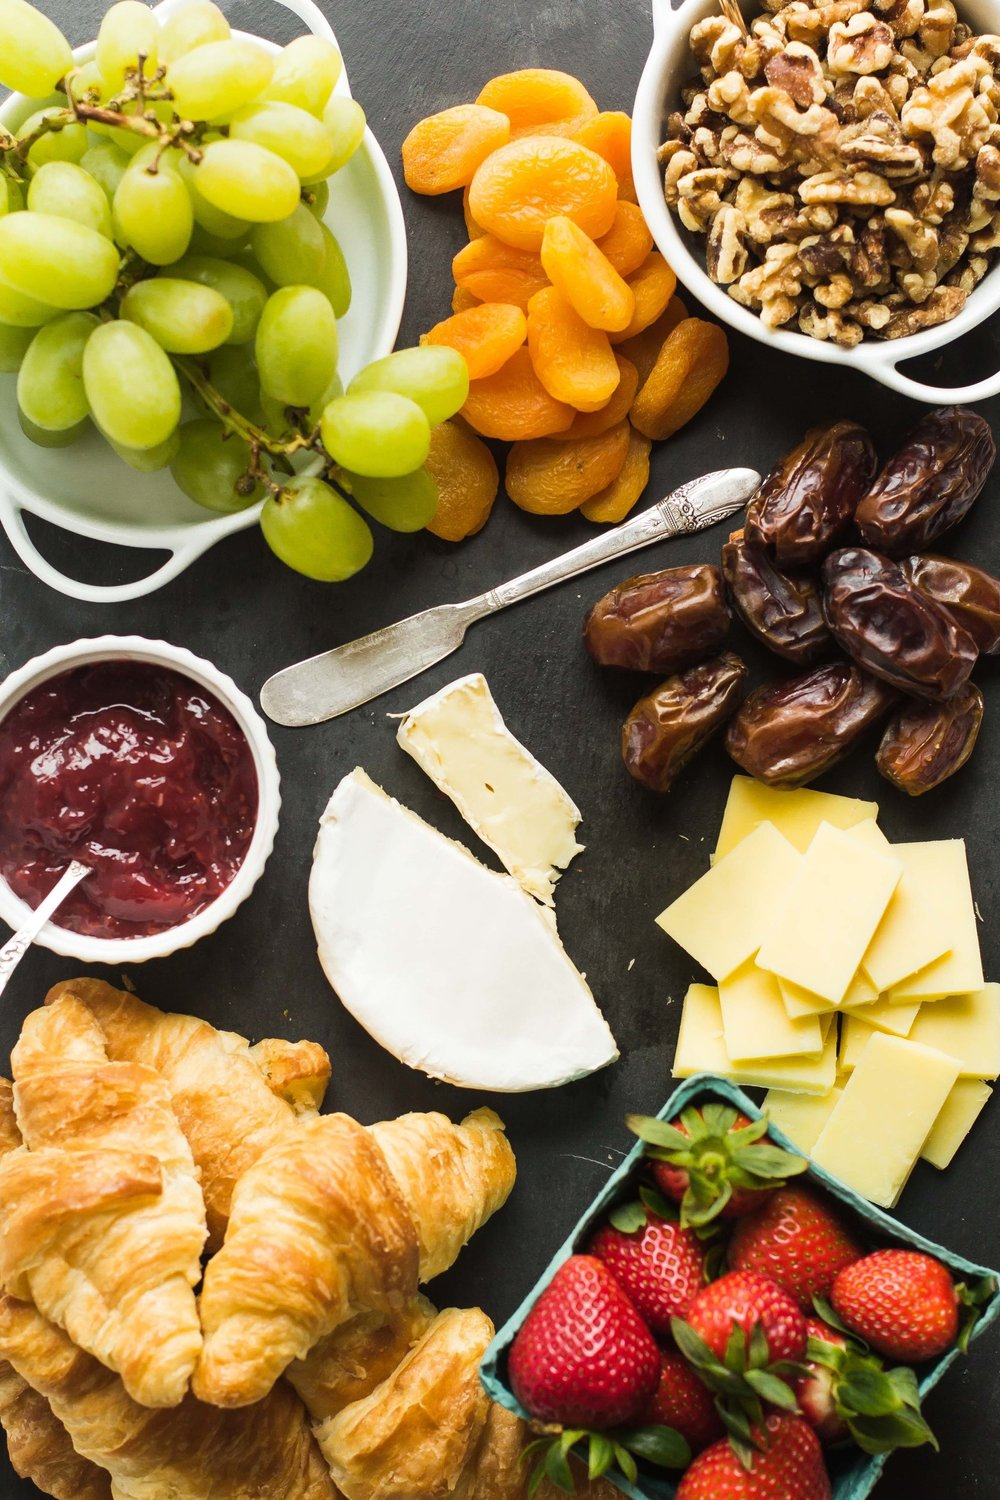 Sweet + Savory No-Cook Brunch Boards - Sarah J. Hauser